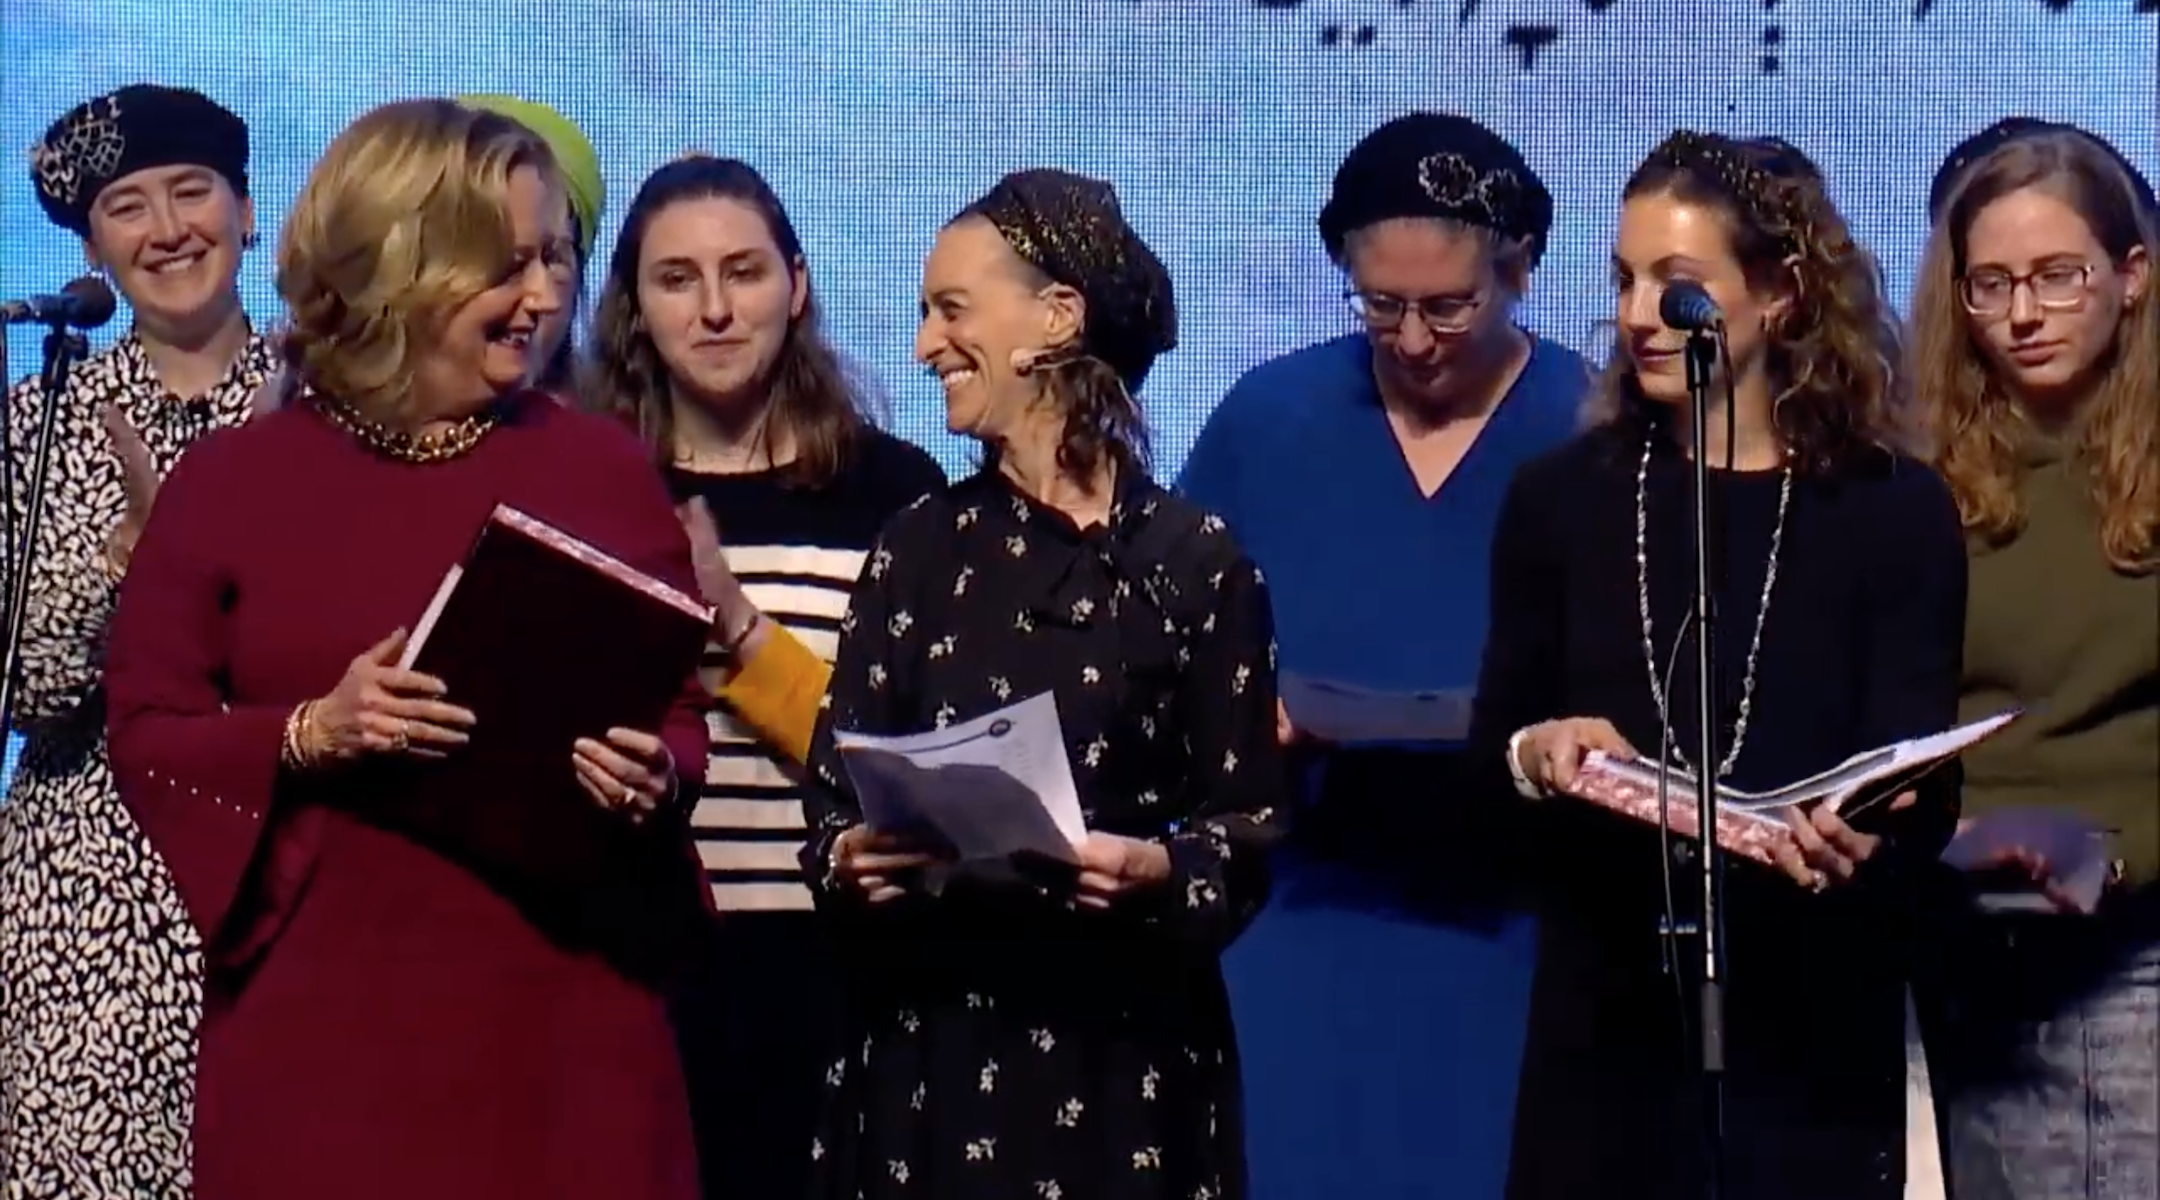 Women celebrate completing the seven-and-a-half-year cycle of Talmud study at a ceremony held by the organization Hadran in Jerusalem in January. (Screenshot from YouTube)